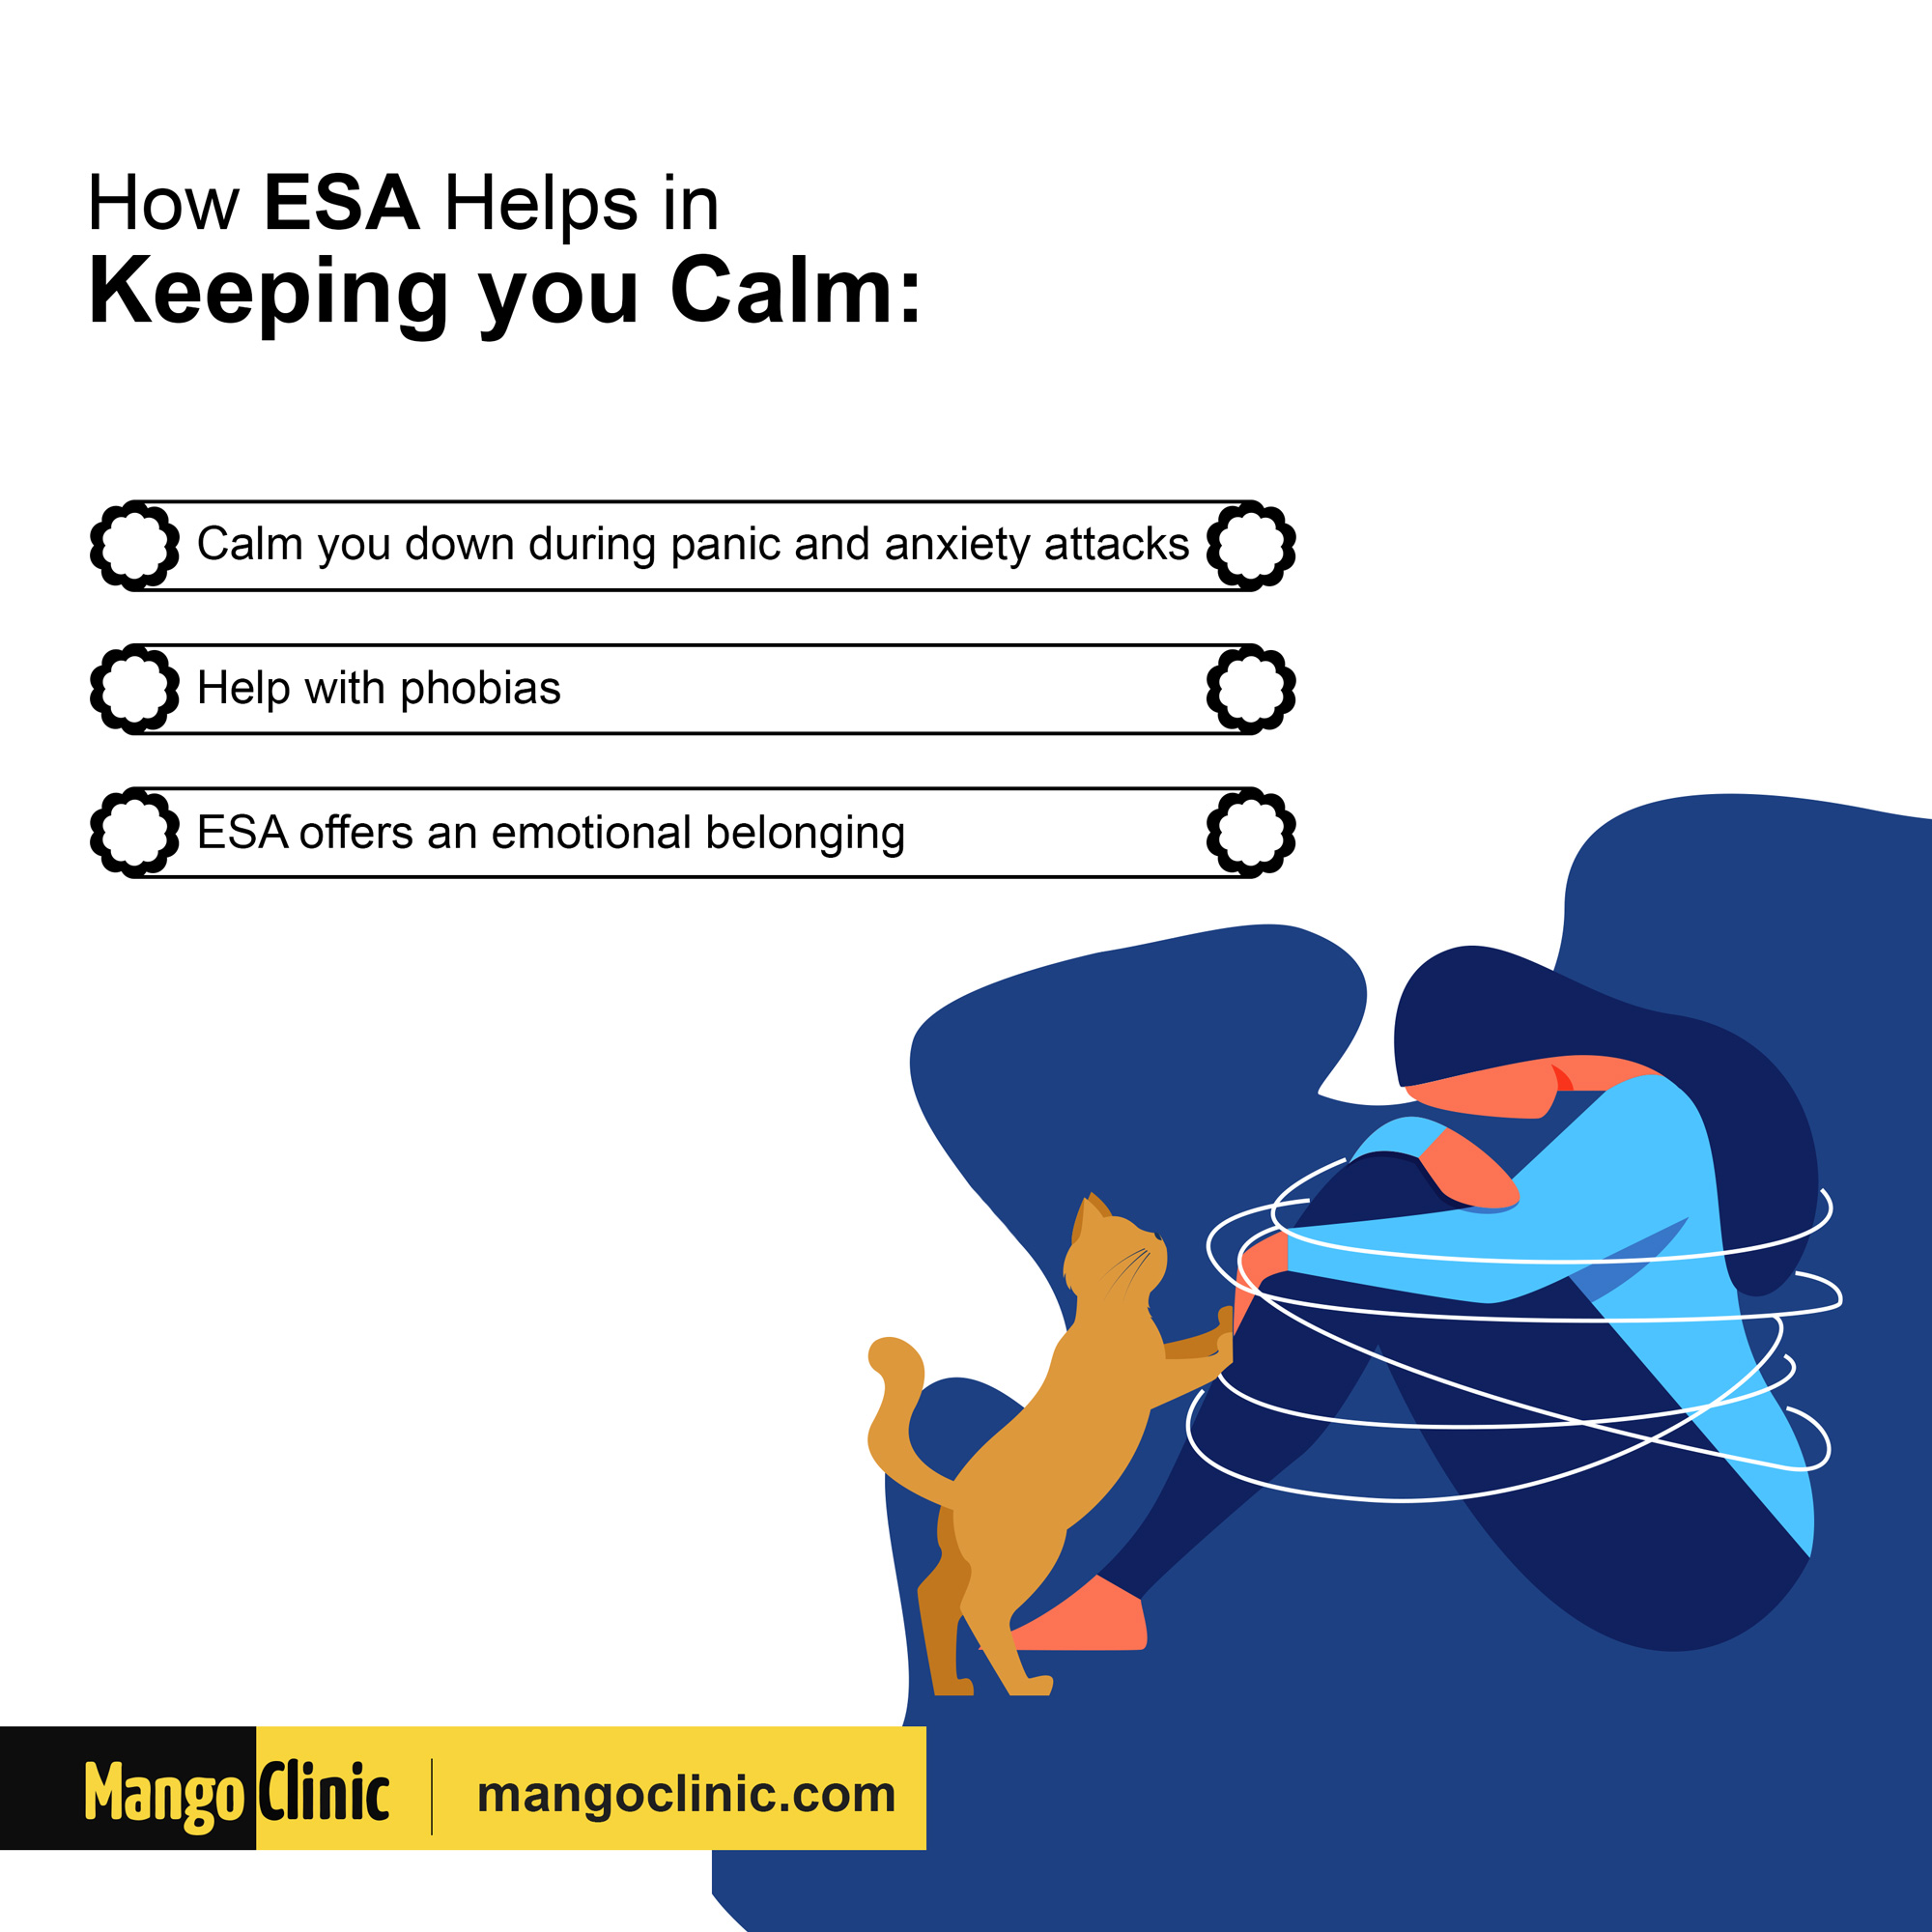 How ESA keeps you calm